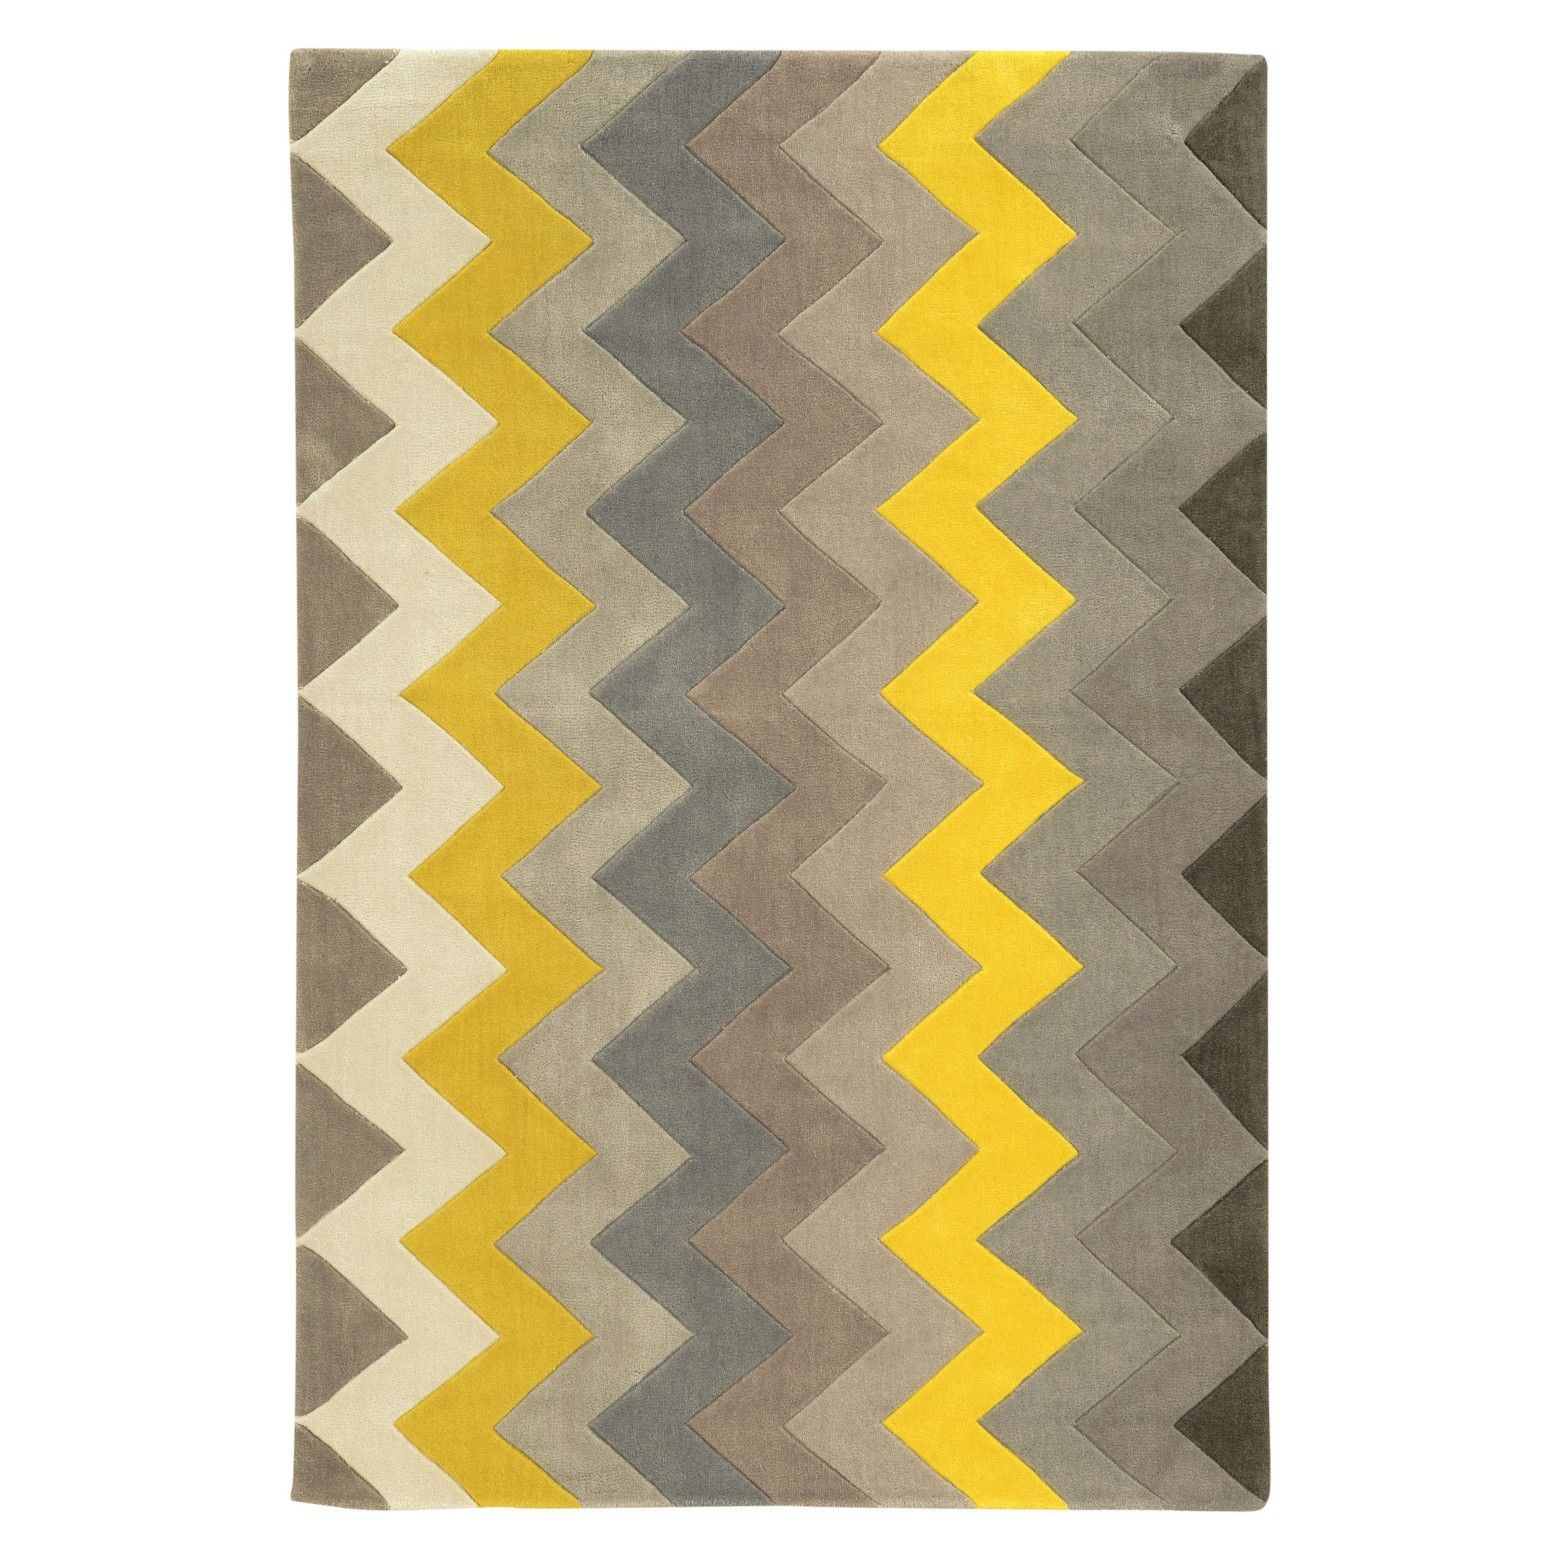 Va Va Voom Wins The Day With The Trio Collection Zigzag Rug The